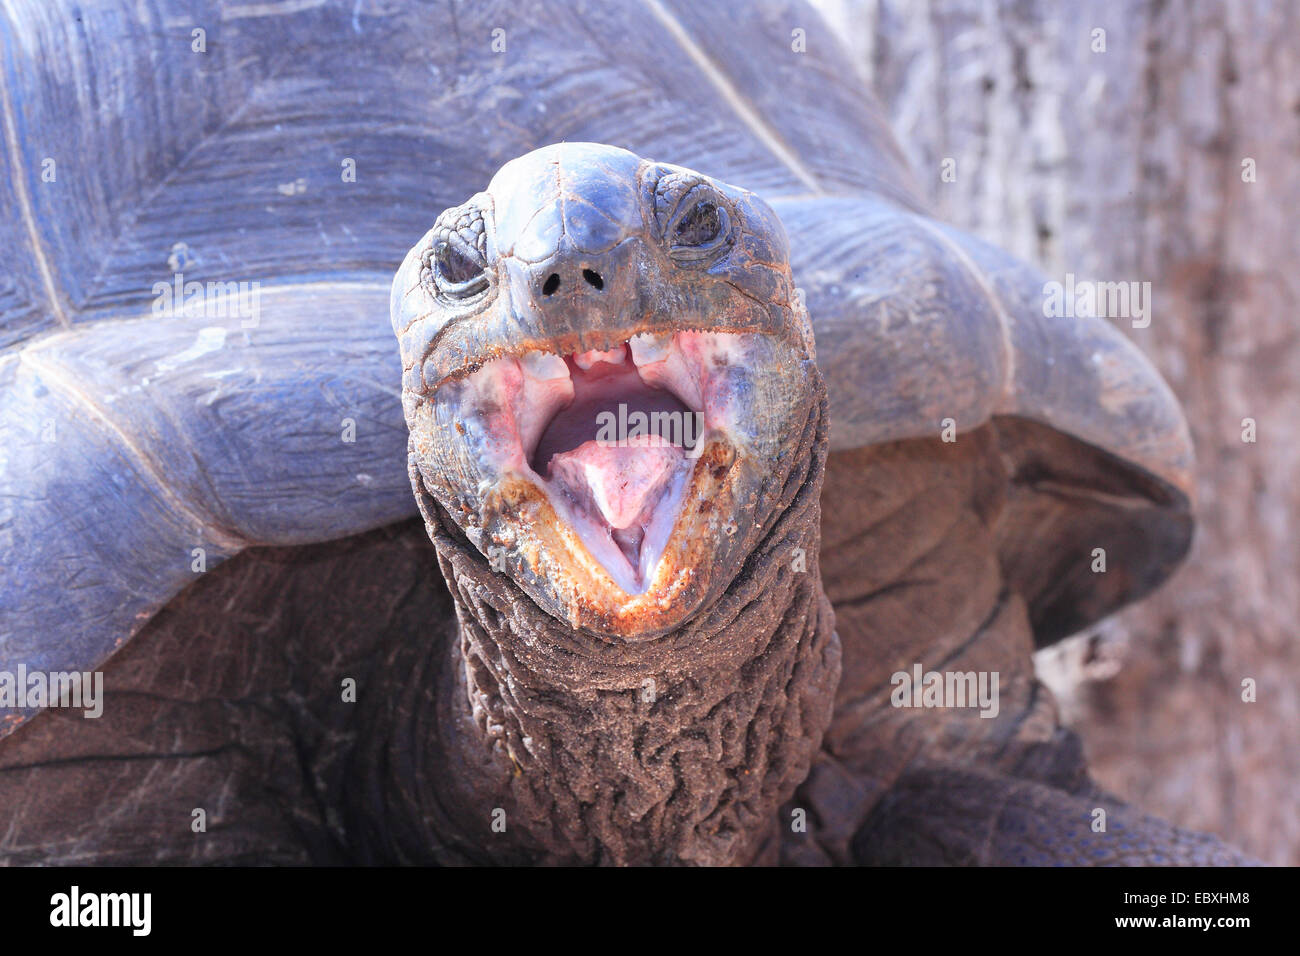 A close up image of a free living giant tortoise on the Seychelles island of La Digue - August 2013 - Stock Image